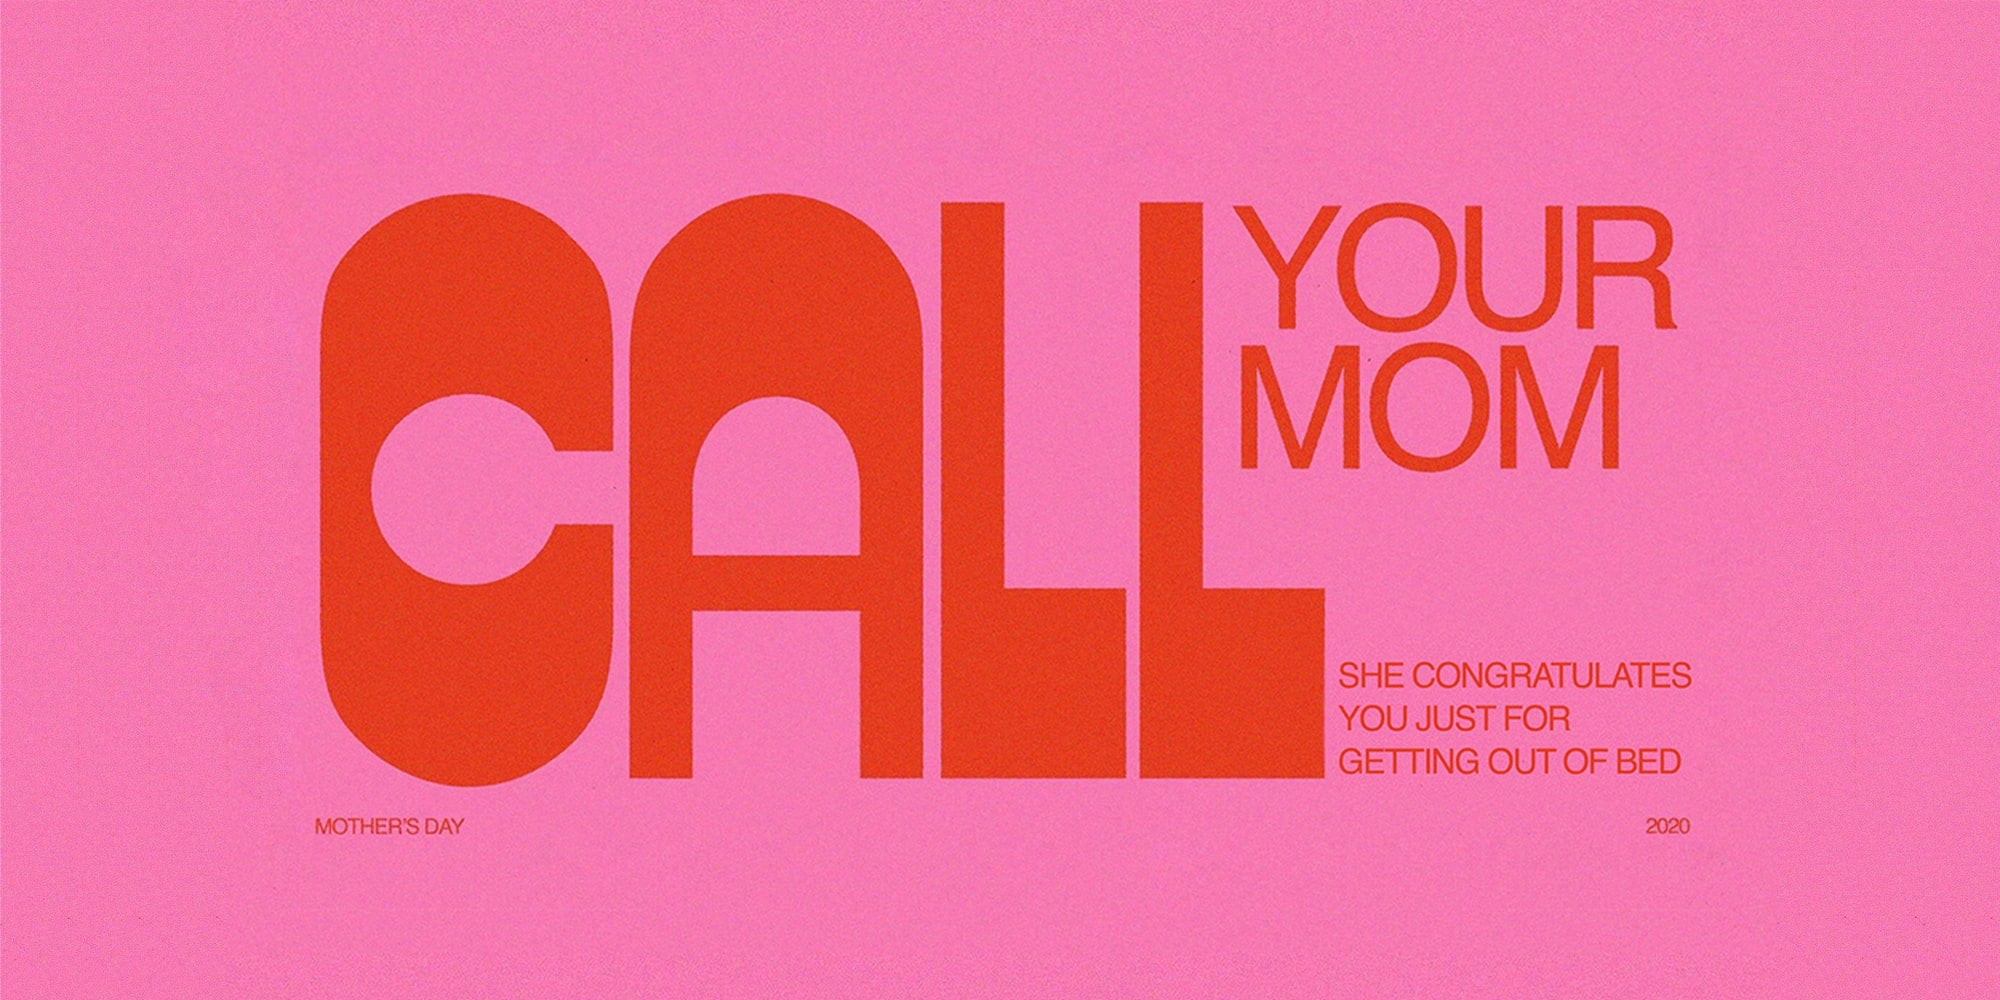 Call your mom!